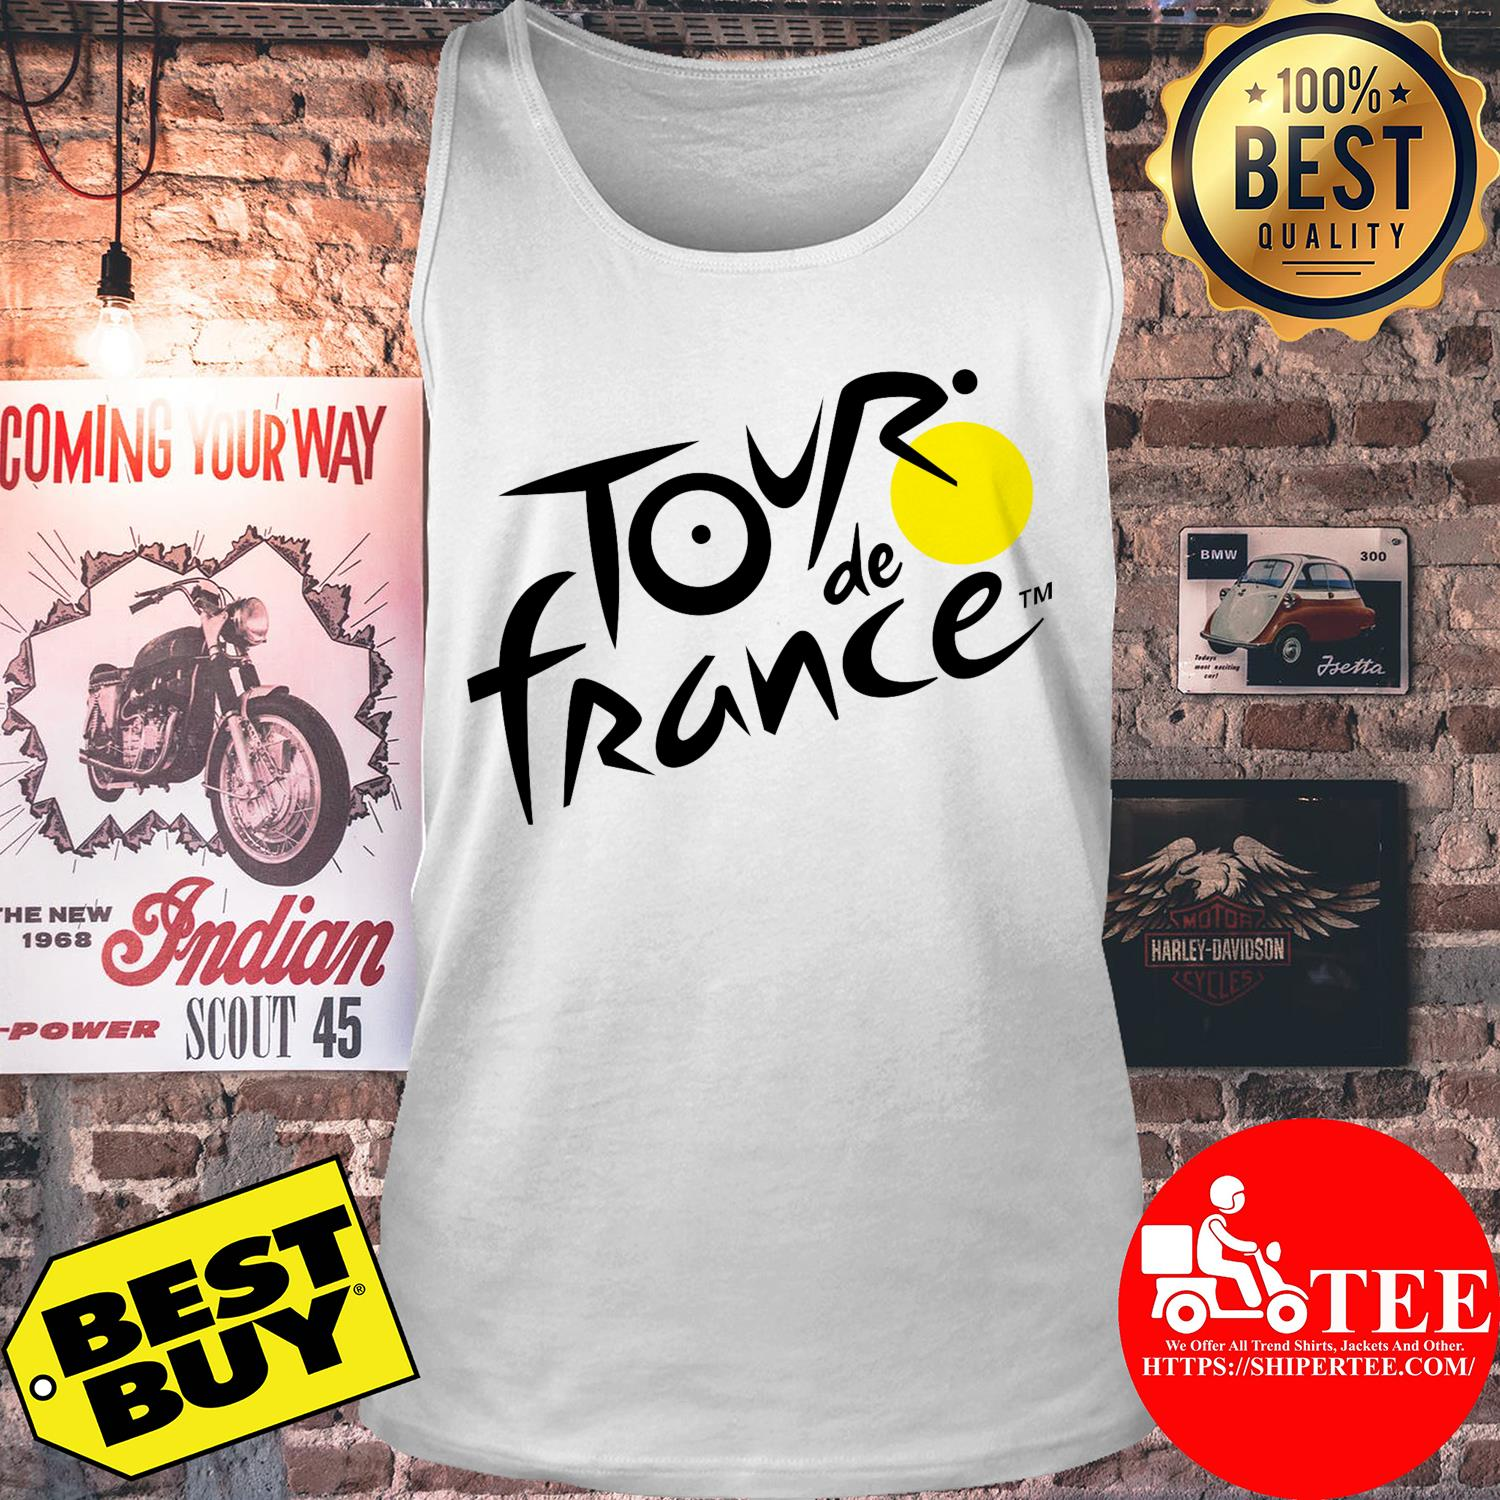 Official logo of Le Tour de France tank top